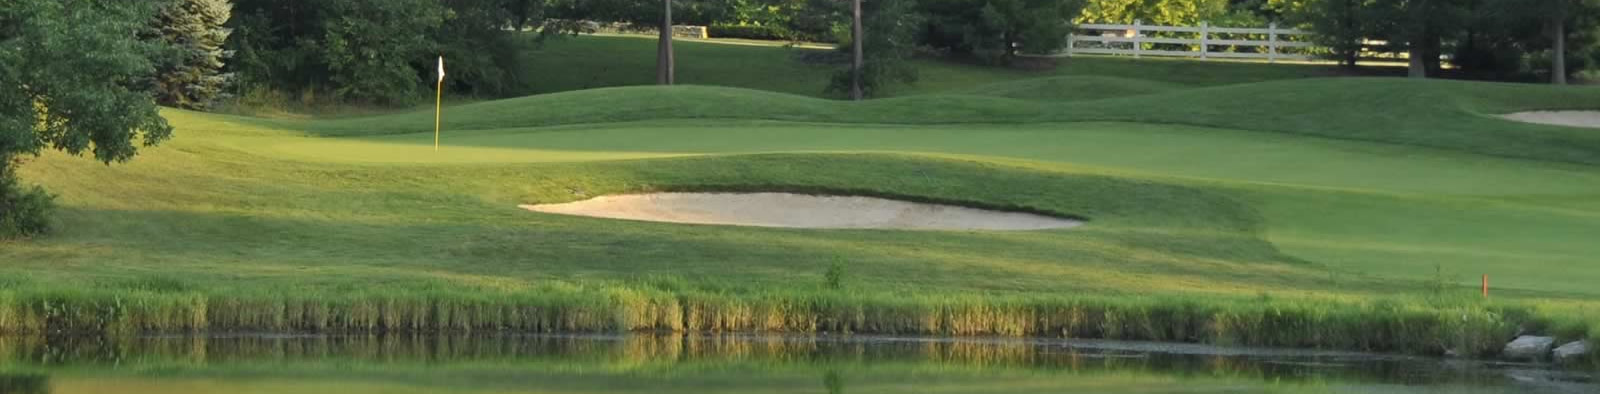 brighton mi golf courses best